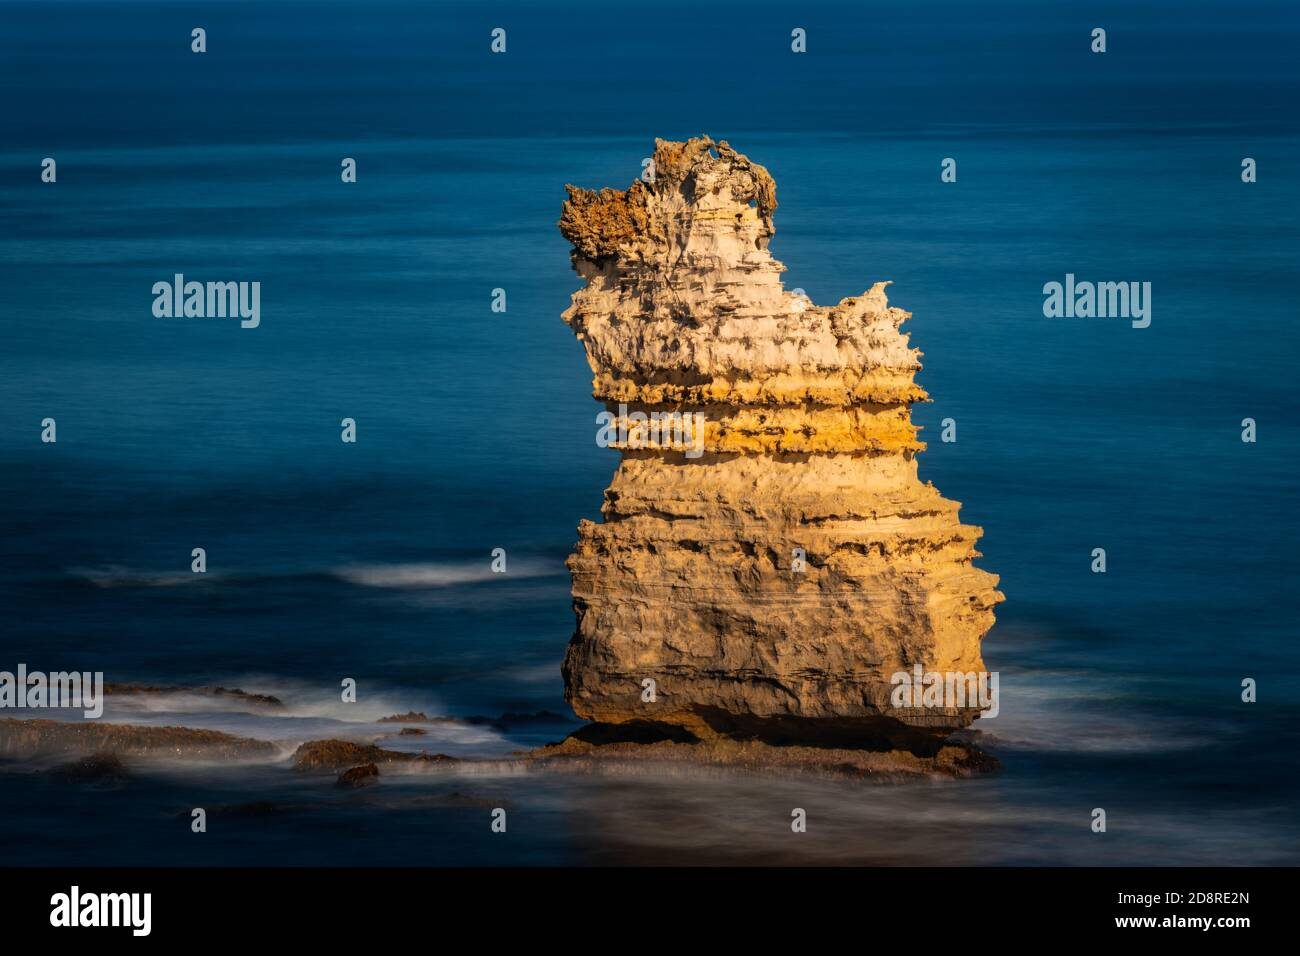 Lonely sea stack in Bay of Islands Coastal Park at the famous Great Ocean Road. Stock Photo